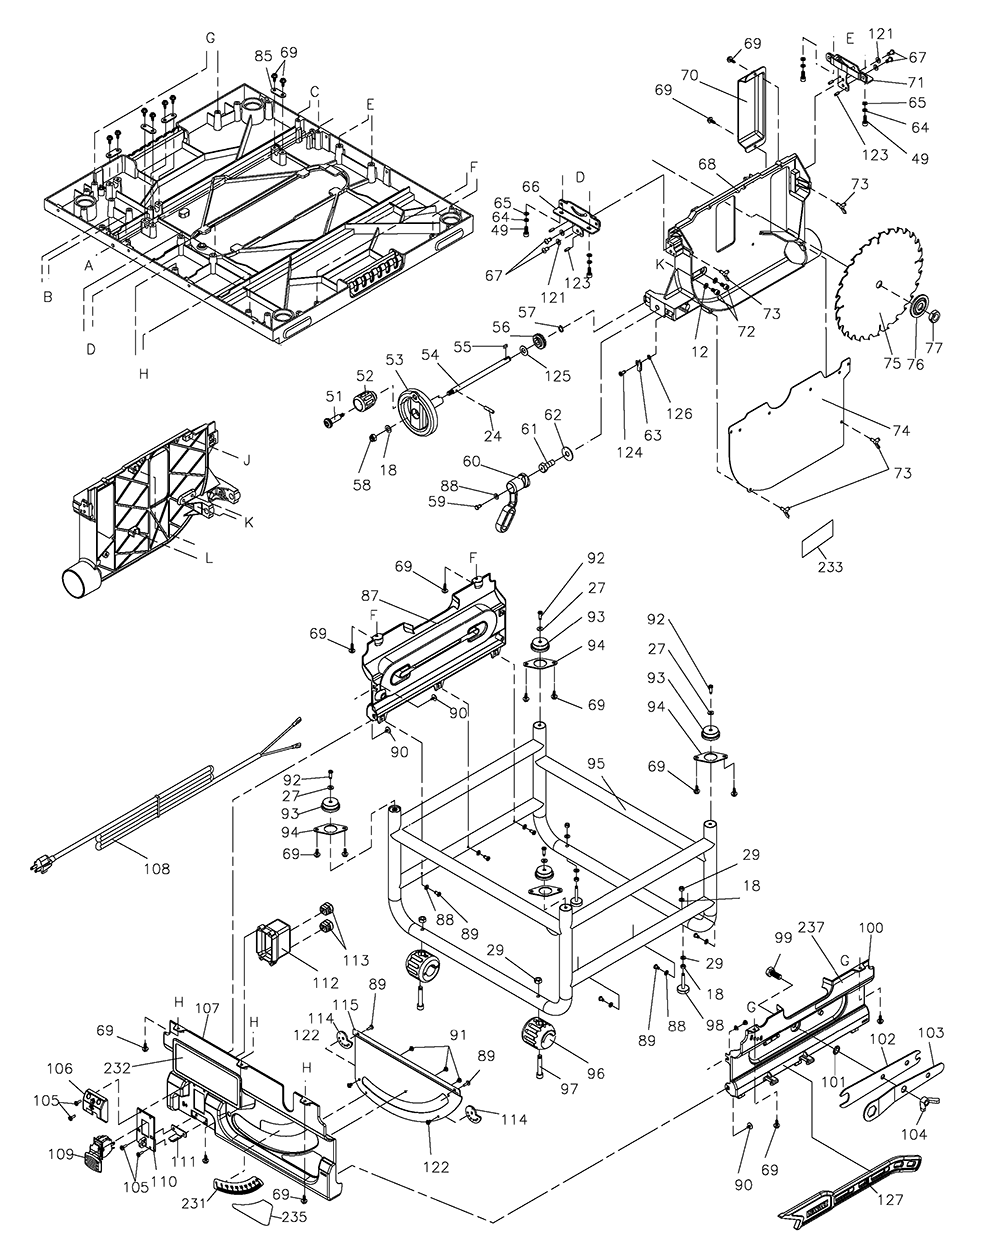 Dewalt 1712 Radial Arm Saw Wiring Diagram